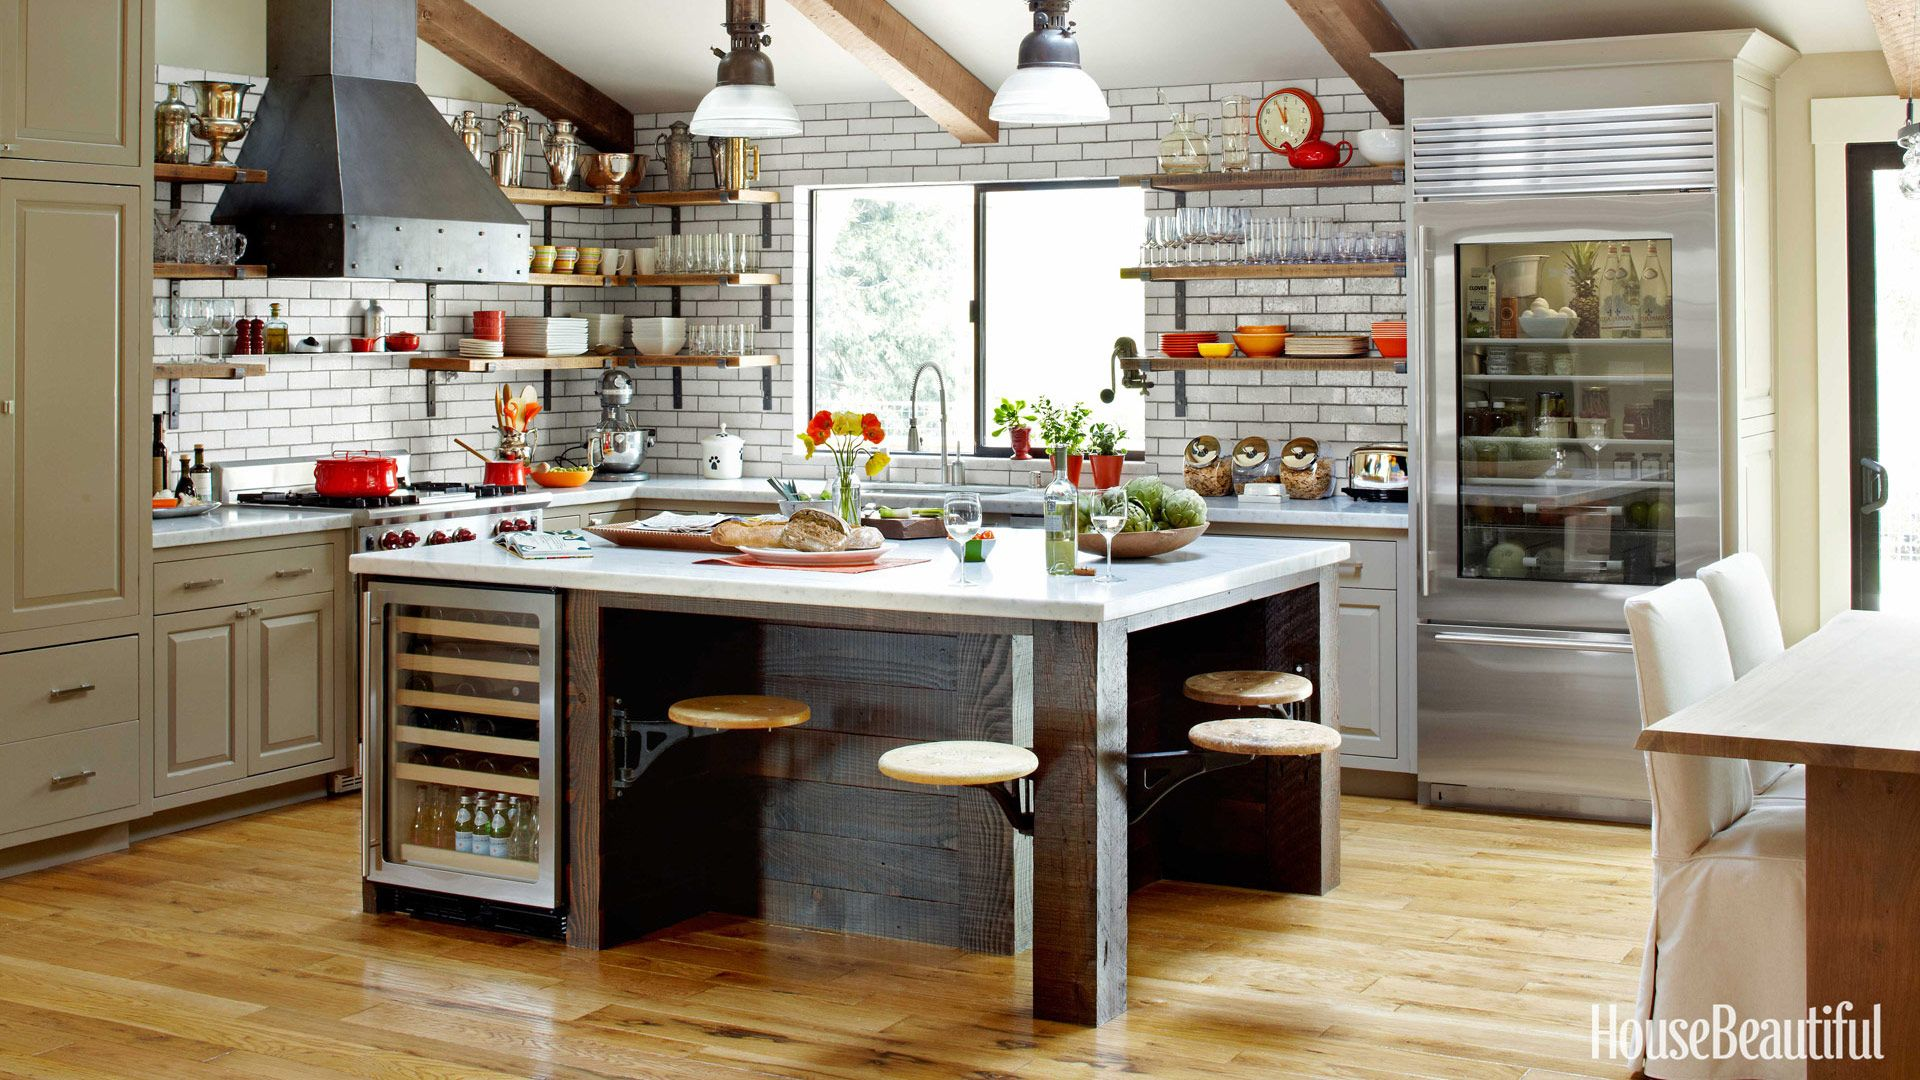 Steel Kitchen Design - Industrial Kitchen Design Ideas